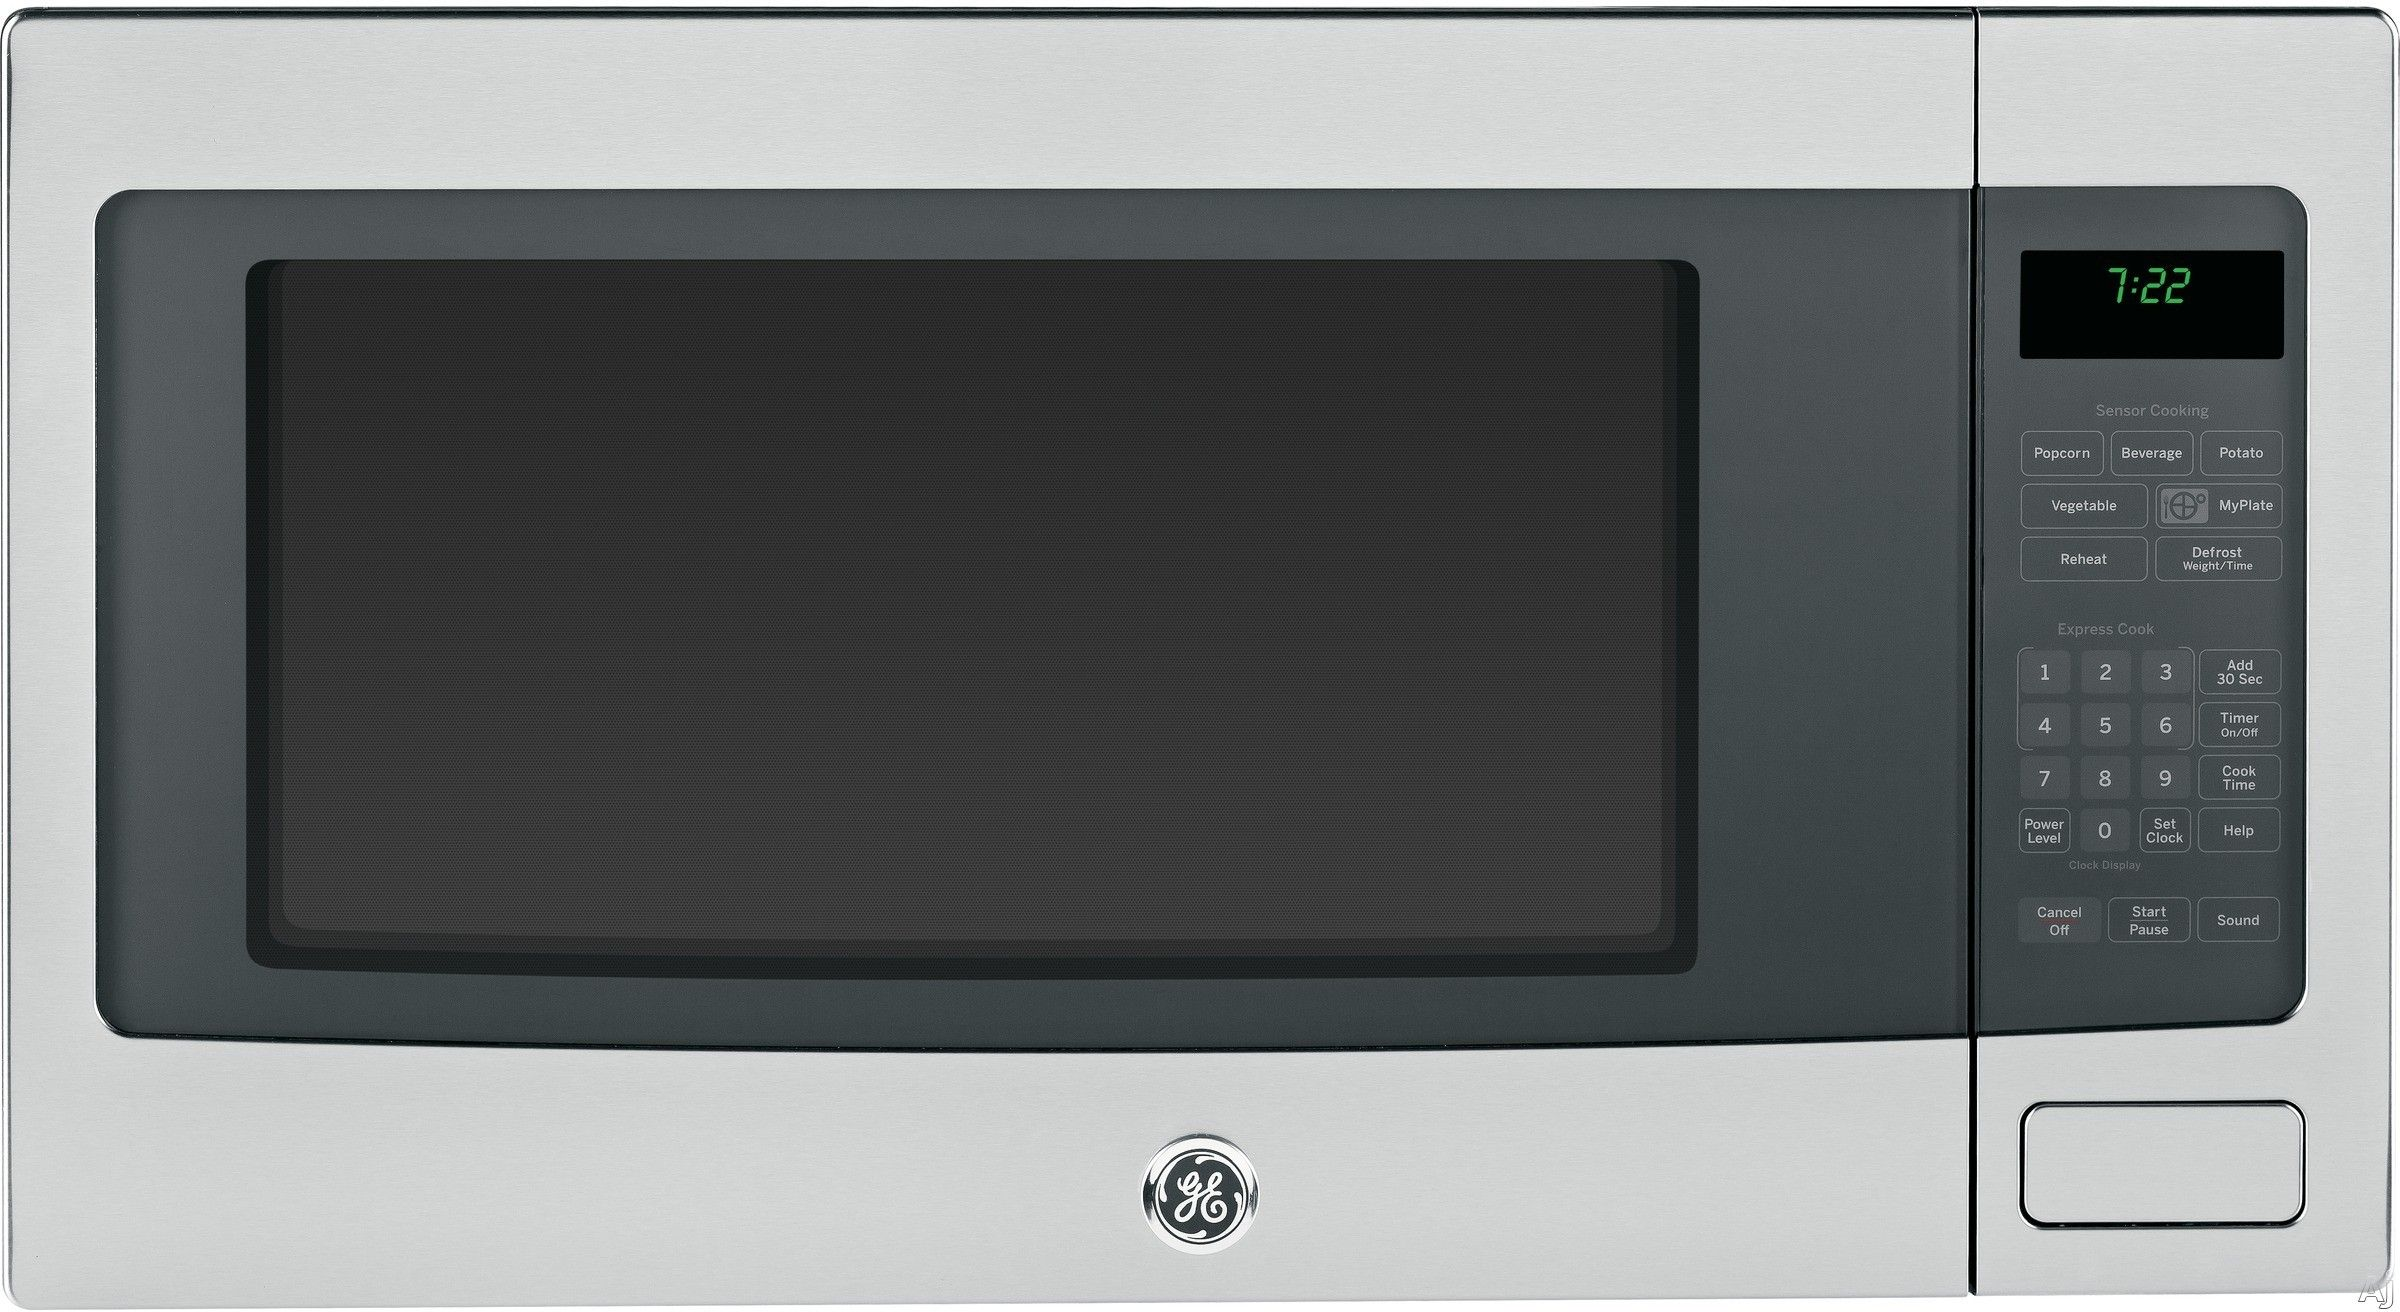 Ge Peb7226sfss 2 2 Cu Ft Countertop Microwave Oven With 1100